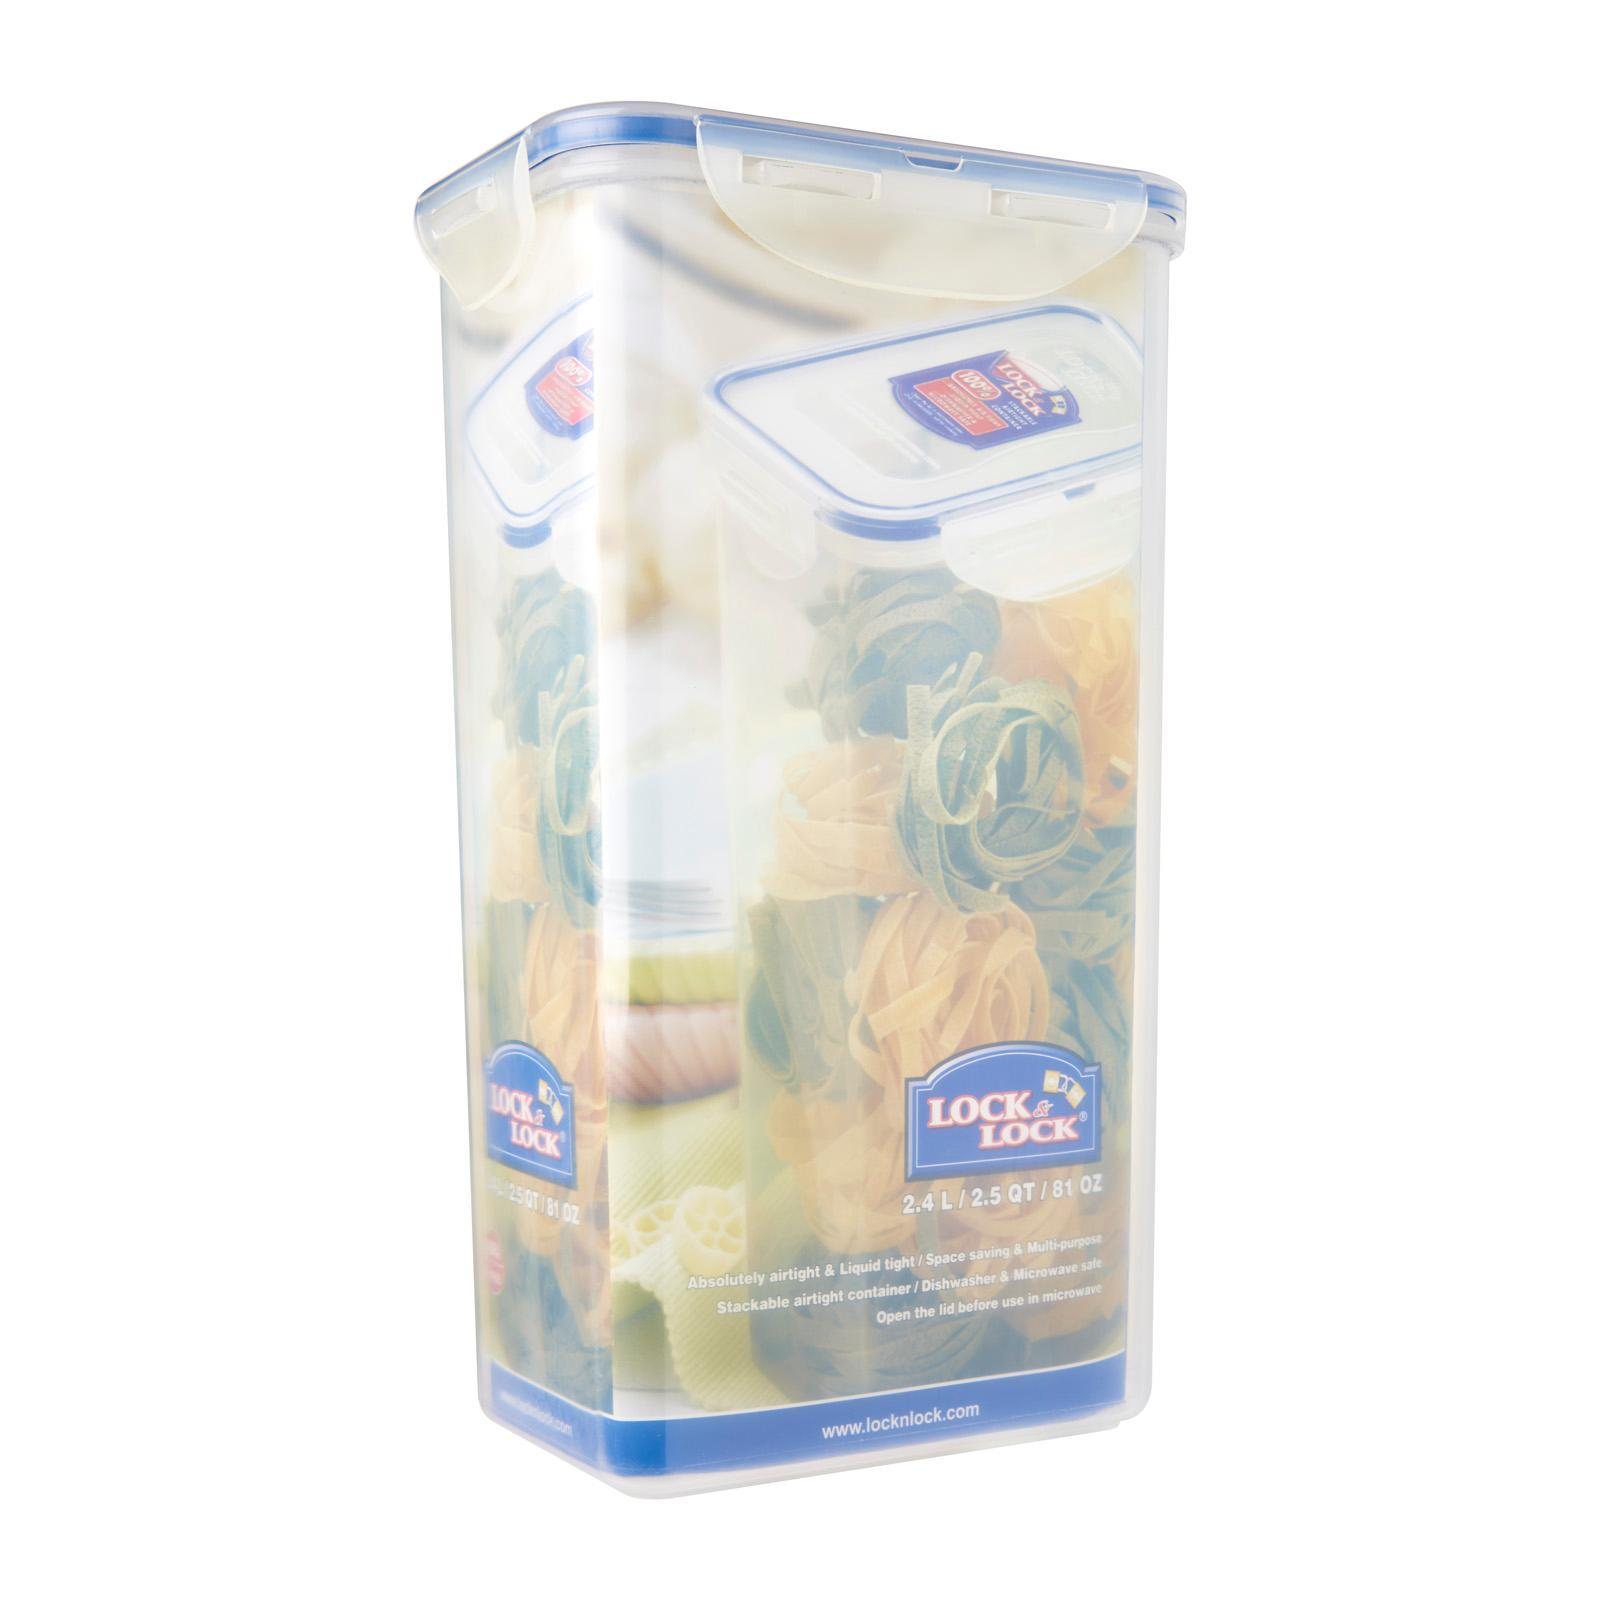 Lock & Lock Rectangular Classic Food Container 2.4L